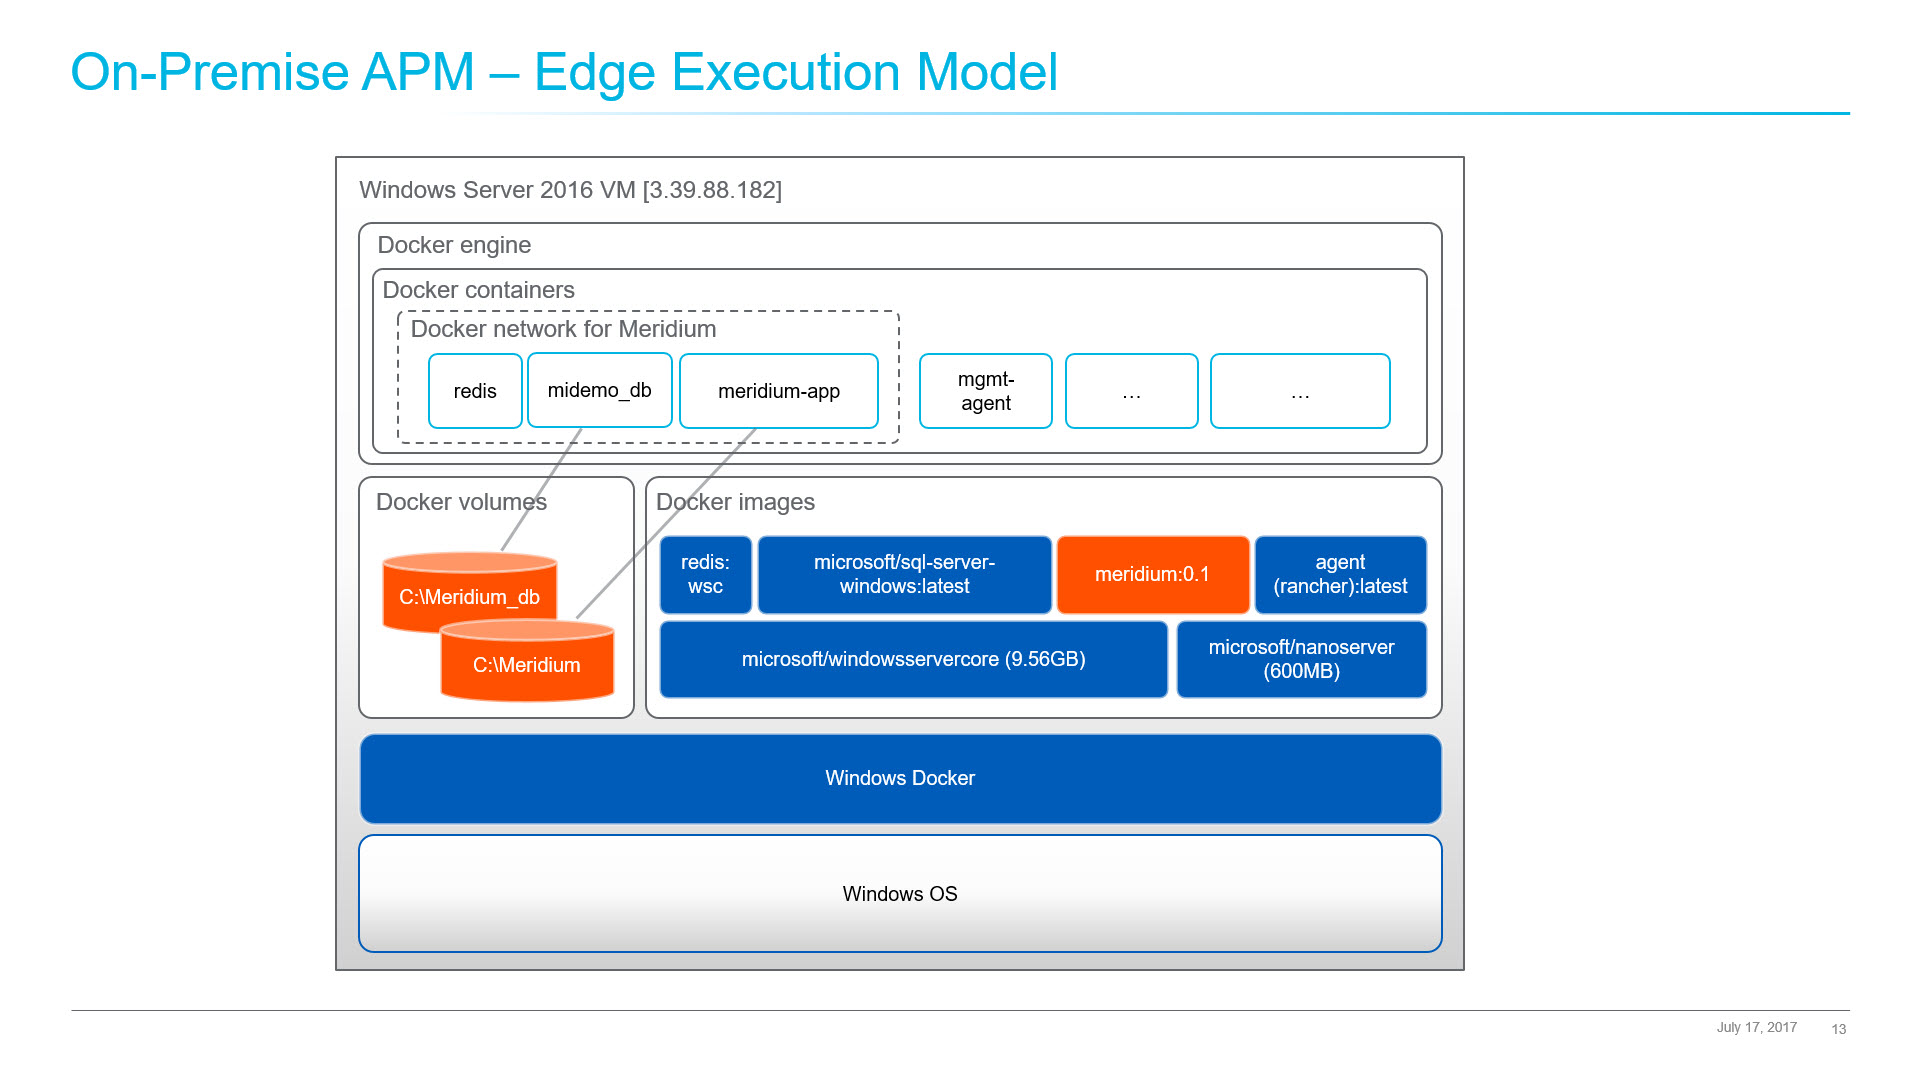 Predix Peter Ngai GE Edge Computing Containerization Docker APM Execution Model